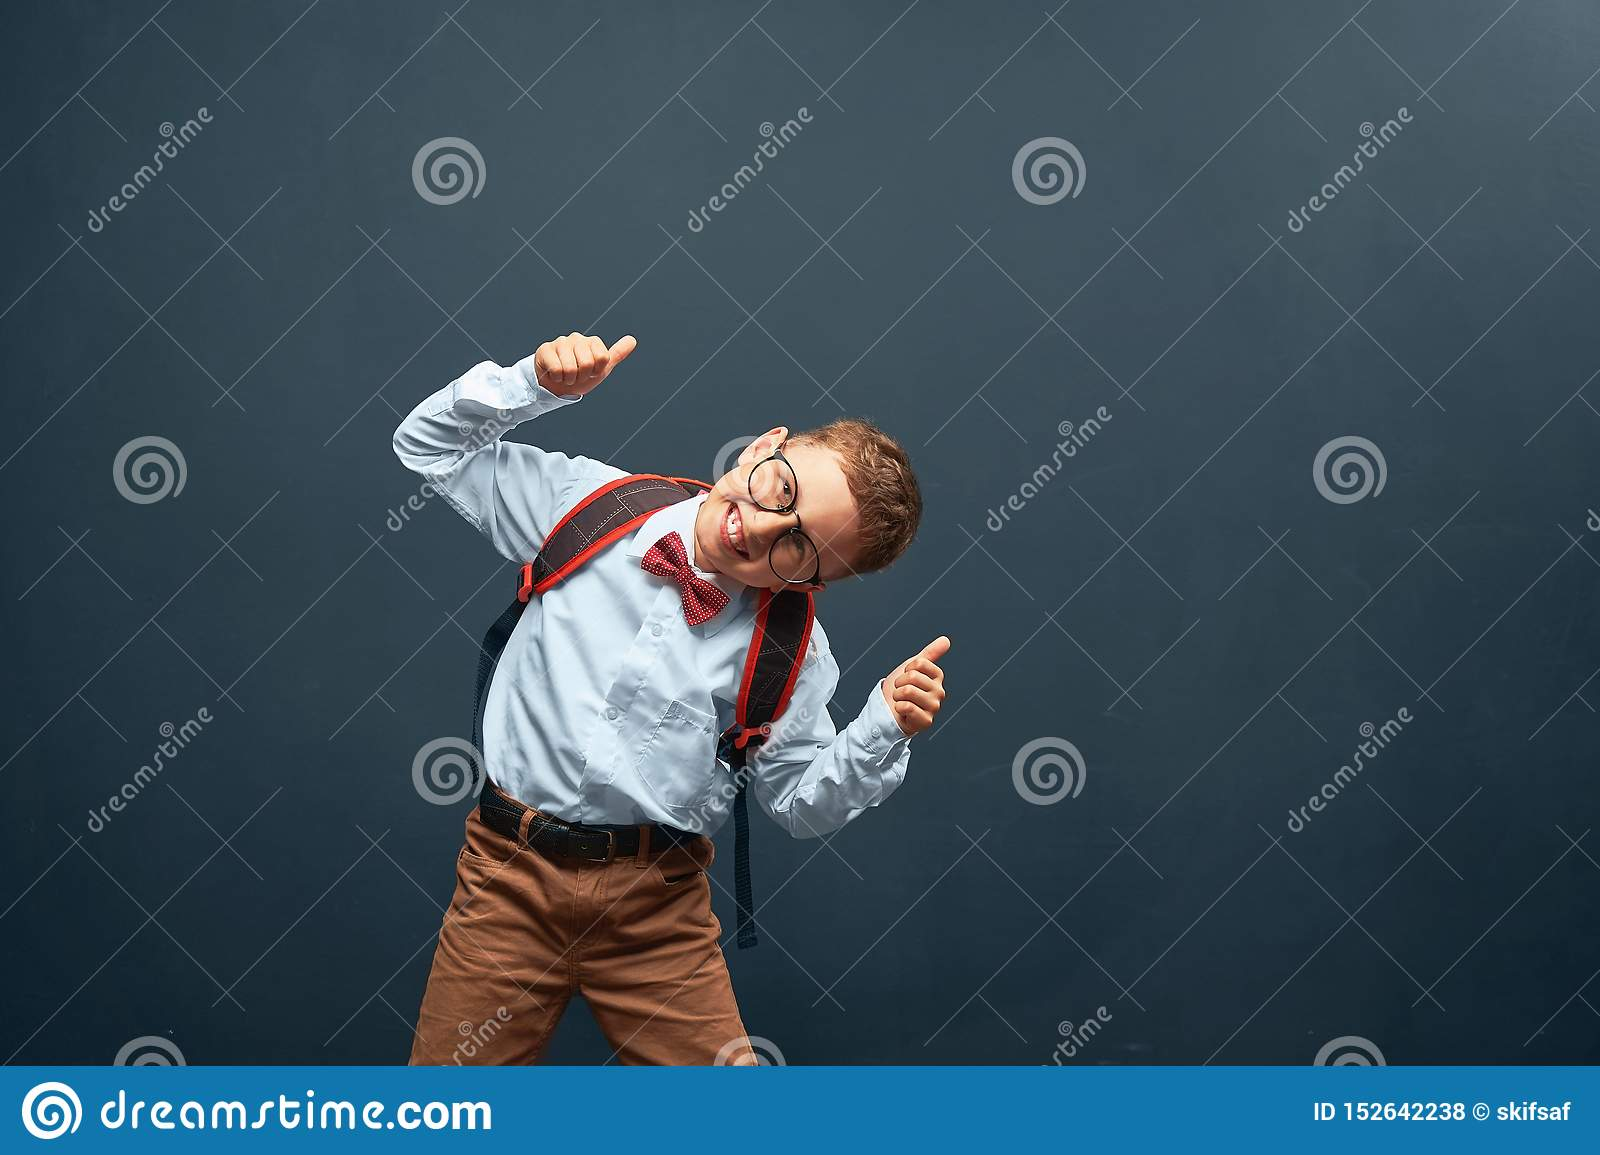 Joyful little boy, on a black background with a briefcase behind his shoulders shows a gesture of victory, joy of success. Happy